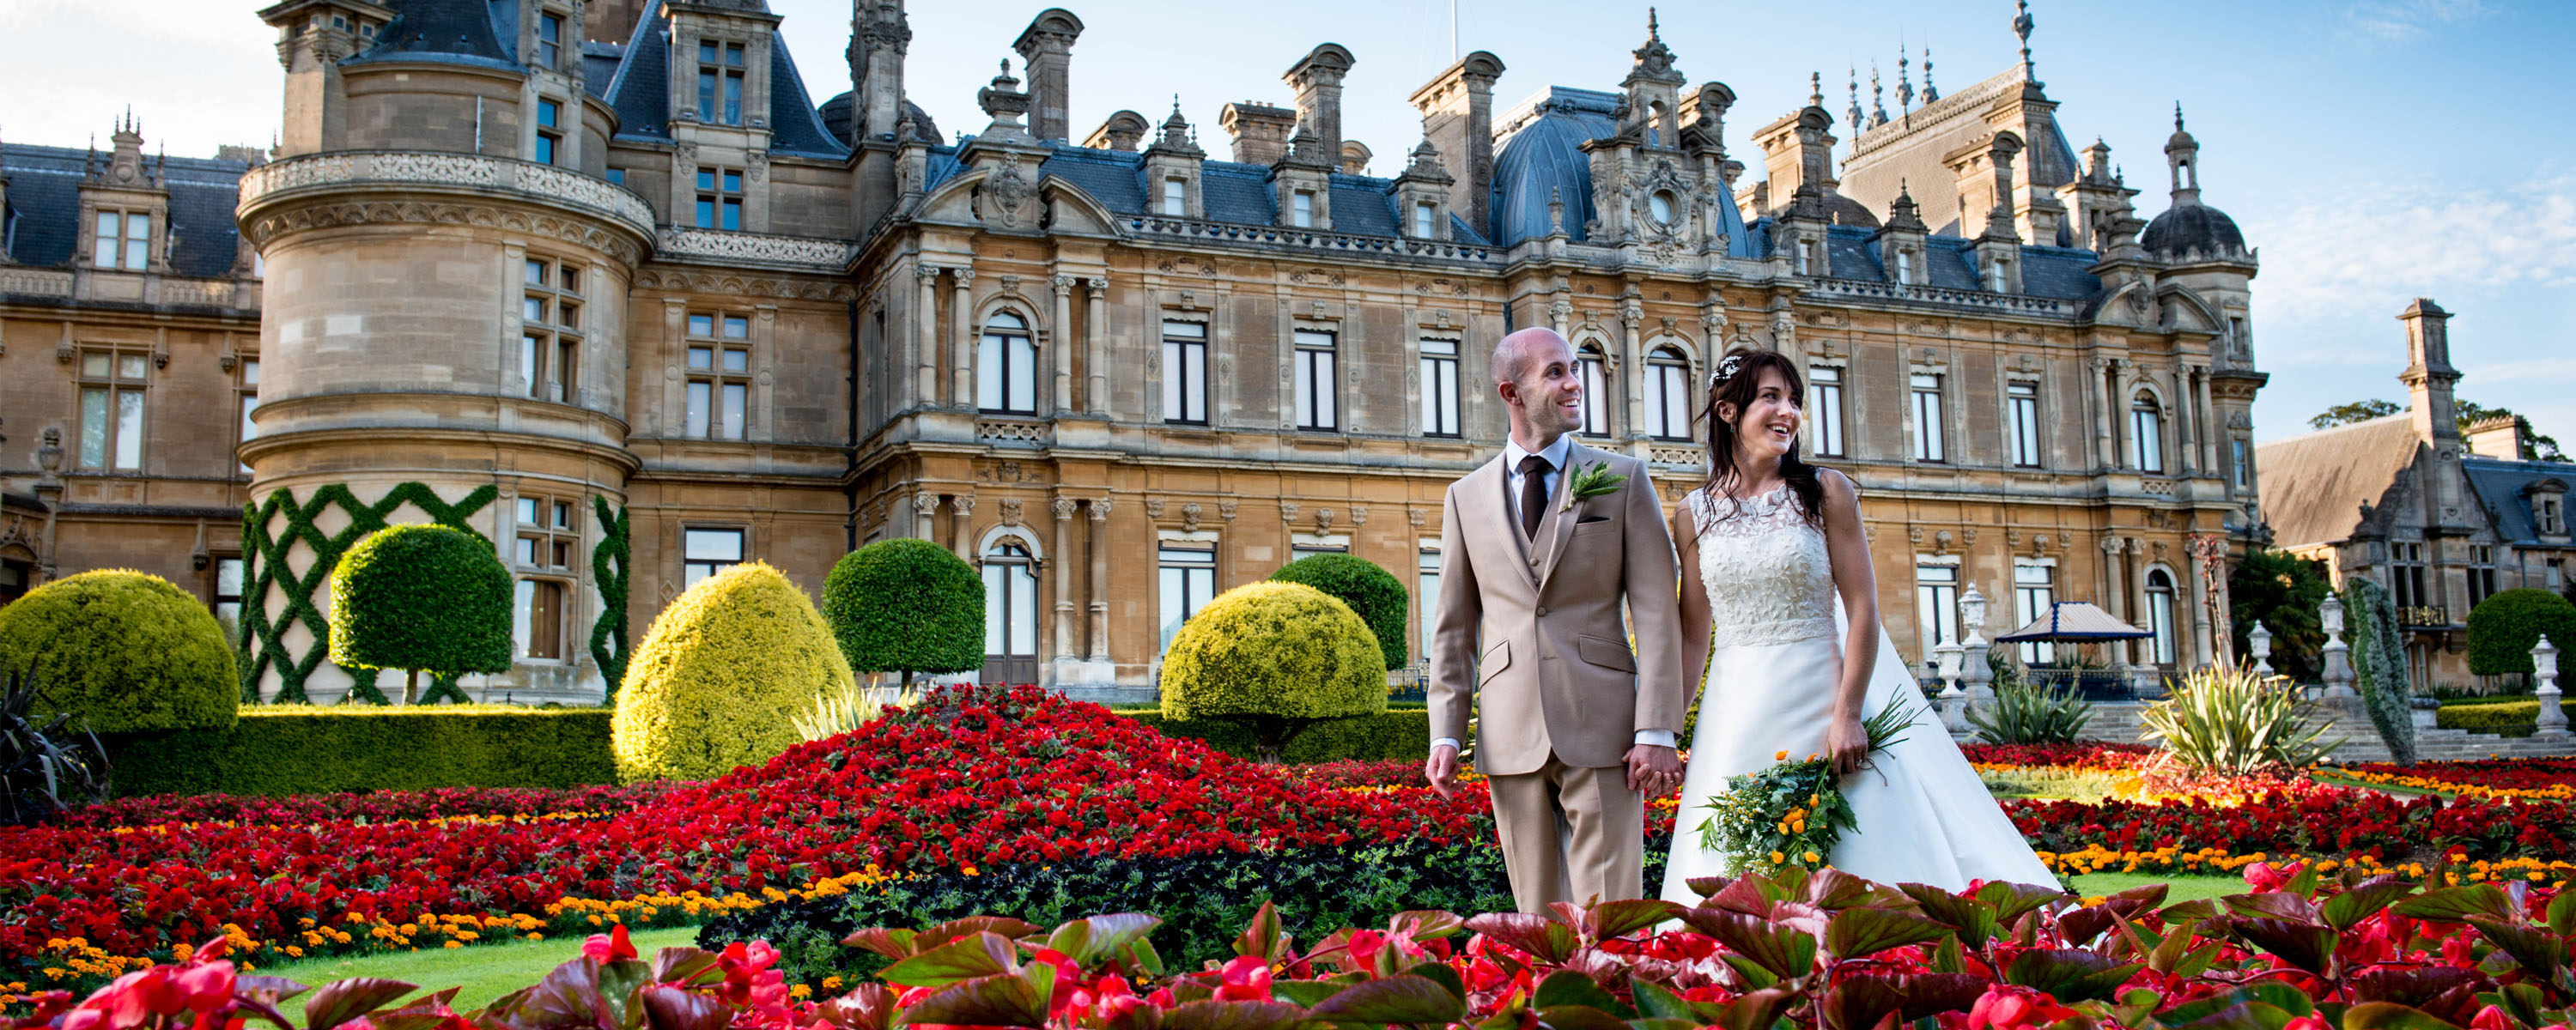 Wedding couple outside of Waddesdon Manor's colourful Parterre garden